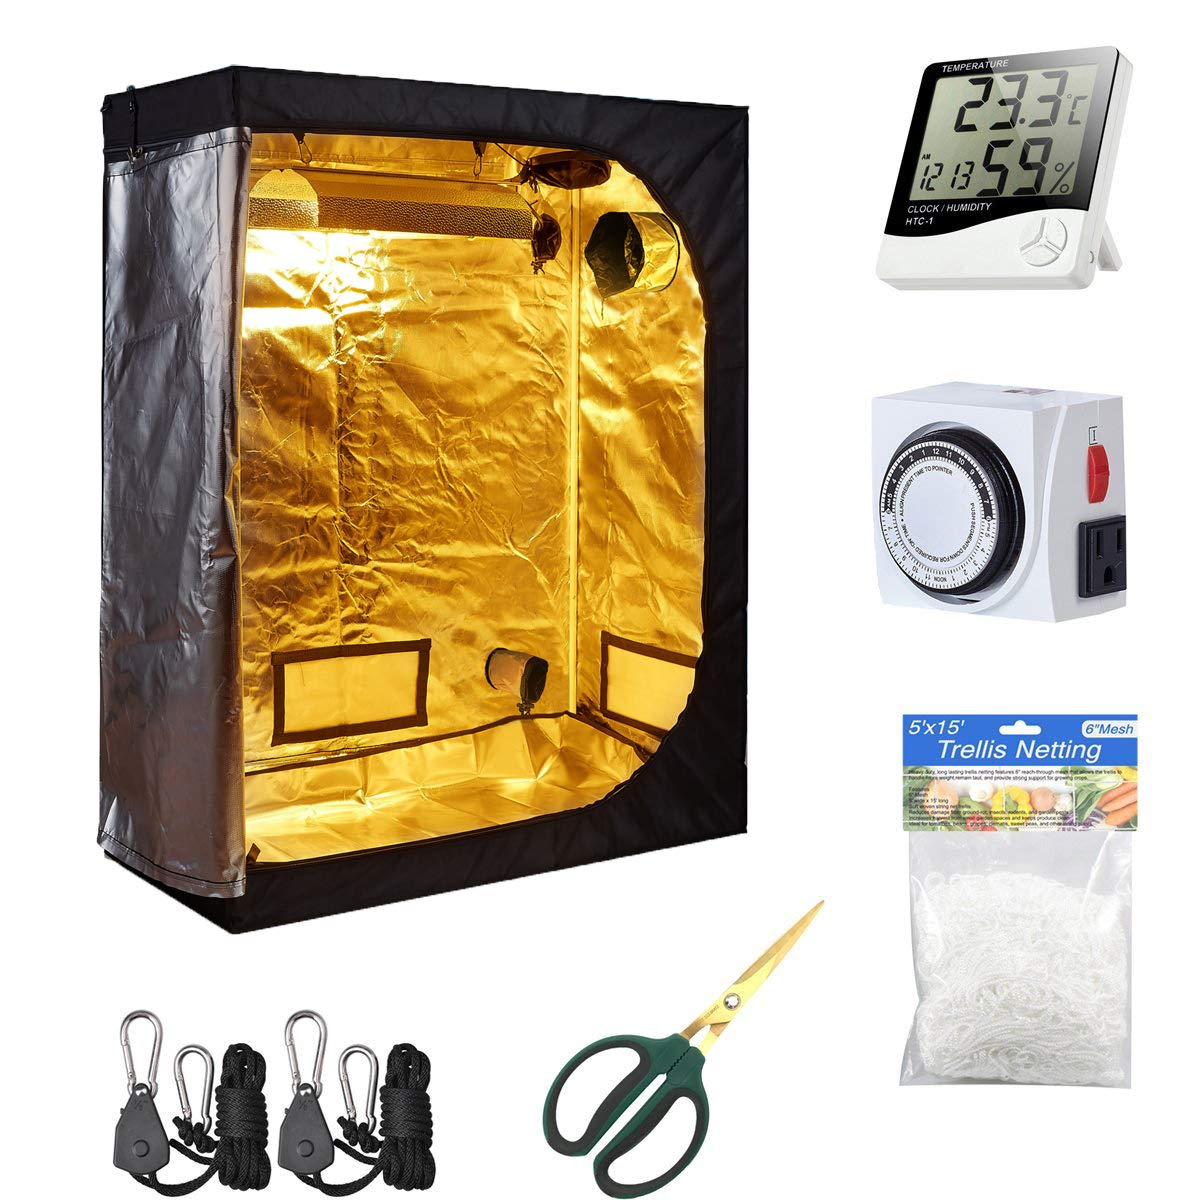 TopoLite 48 x24 x60 Grow Tent 1 Pair Light Hangers 1 Pcs Hygrometer Thermometer for Indoor Garden Growing Room Hydroponic System